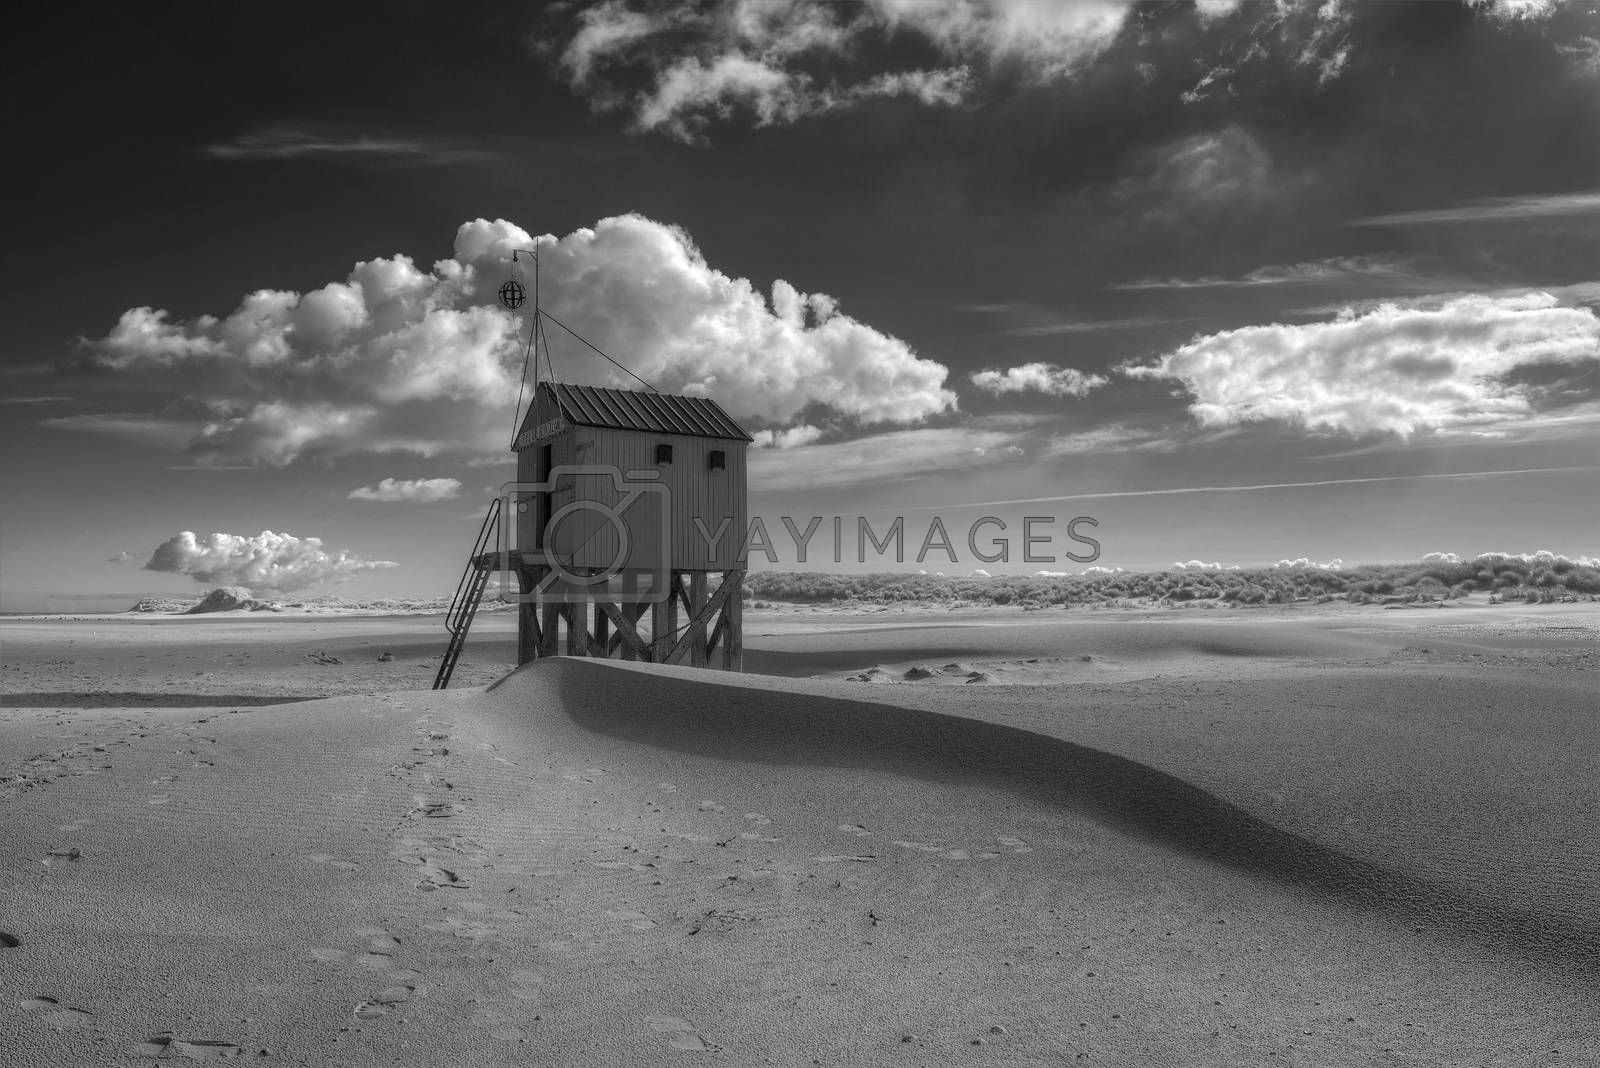 Beach hut on the island of Terschelling in the Netherlands. Authentic wooden beach hut, for shelter, on the island of Terschelling in the Netherlands.